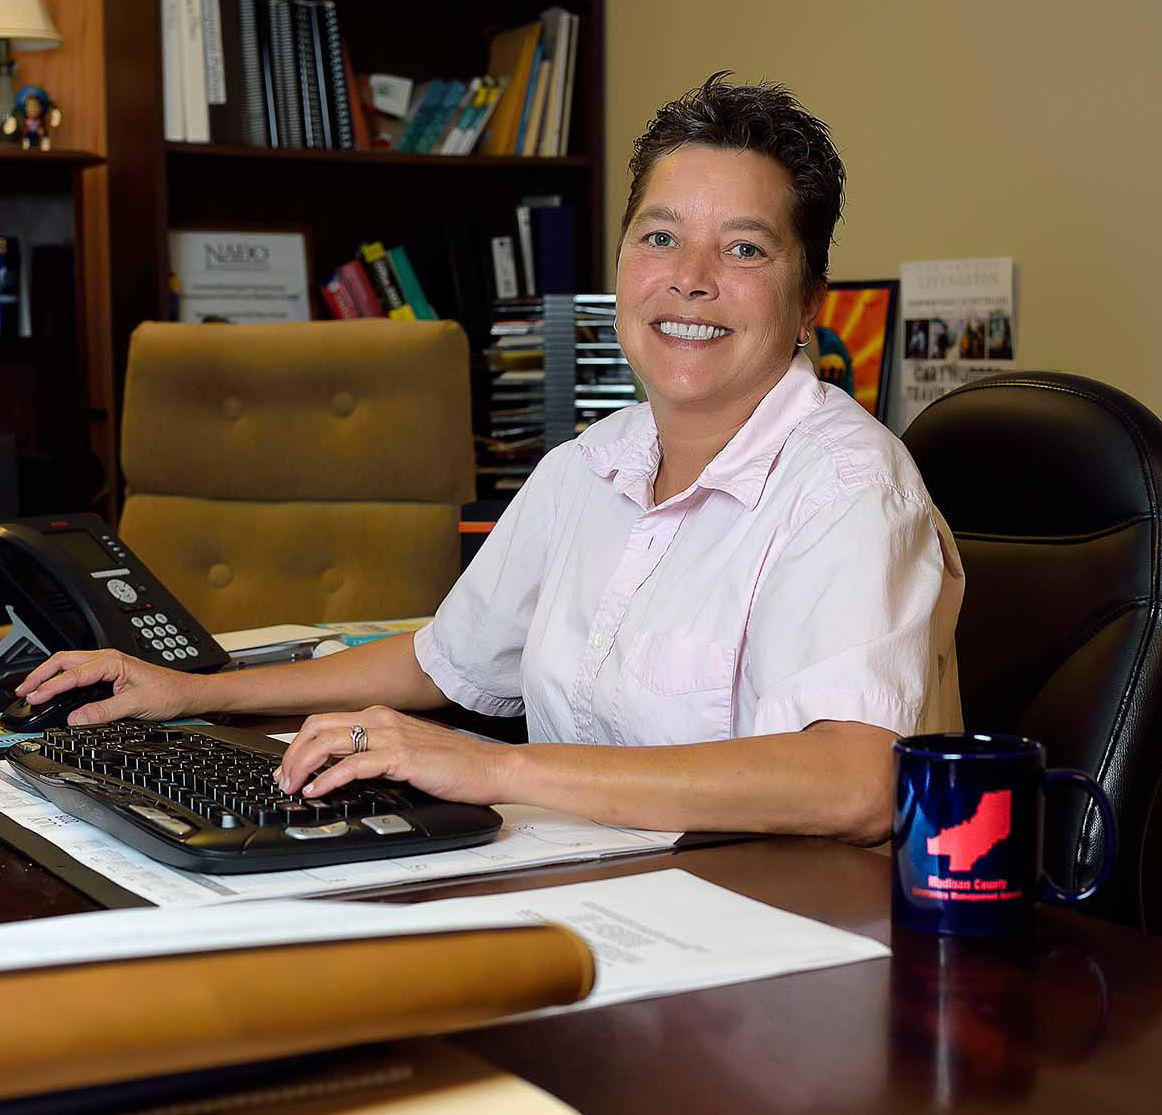 A woman with short hair and a collared, light pink shirt sits at her desk smiling. Her desk has papers and notebooks on it, along with a coffee mug, keyboard, and office phone.